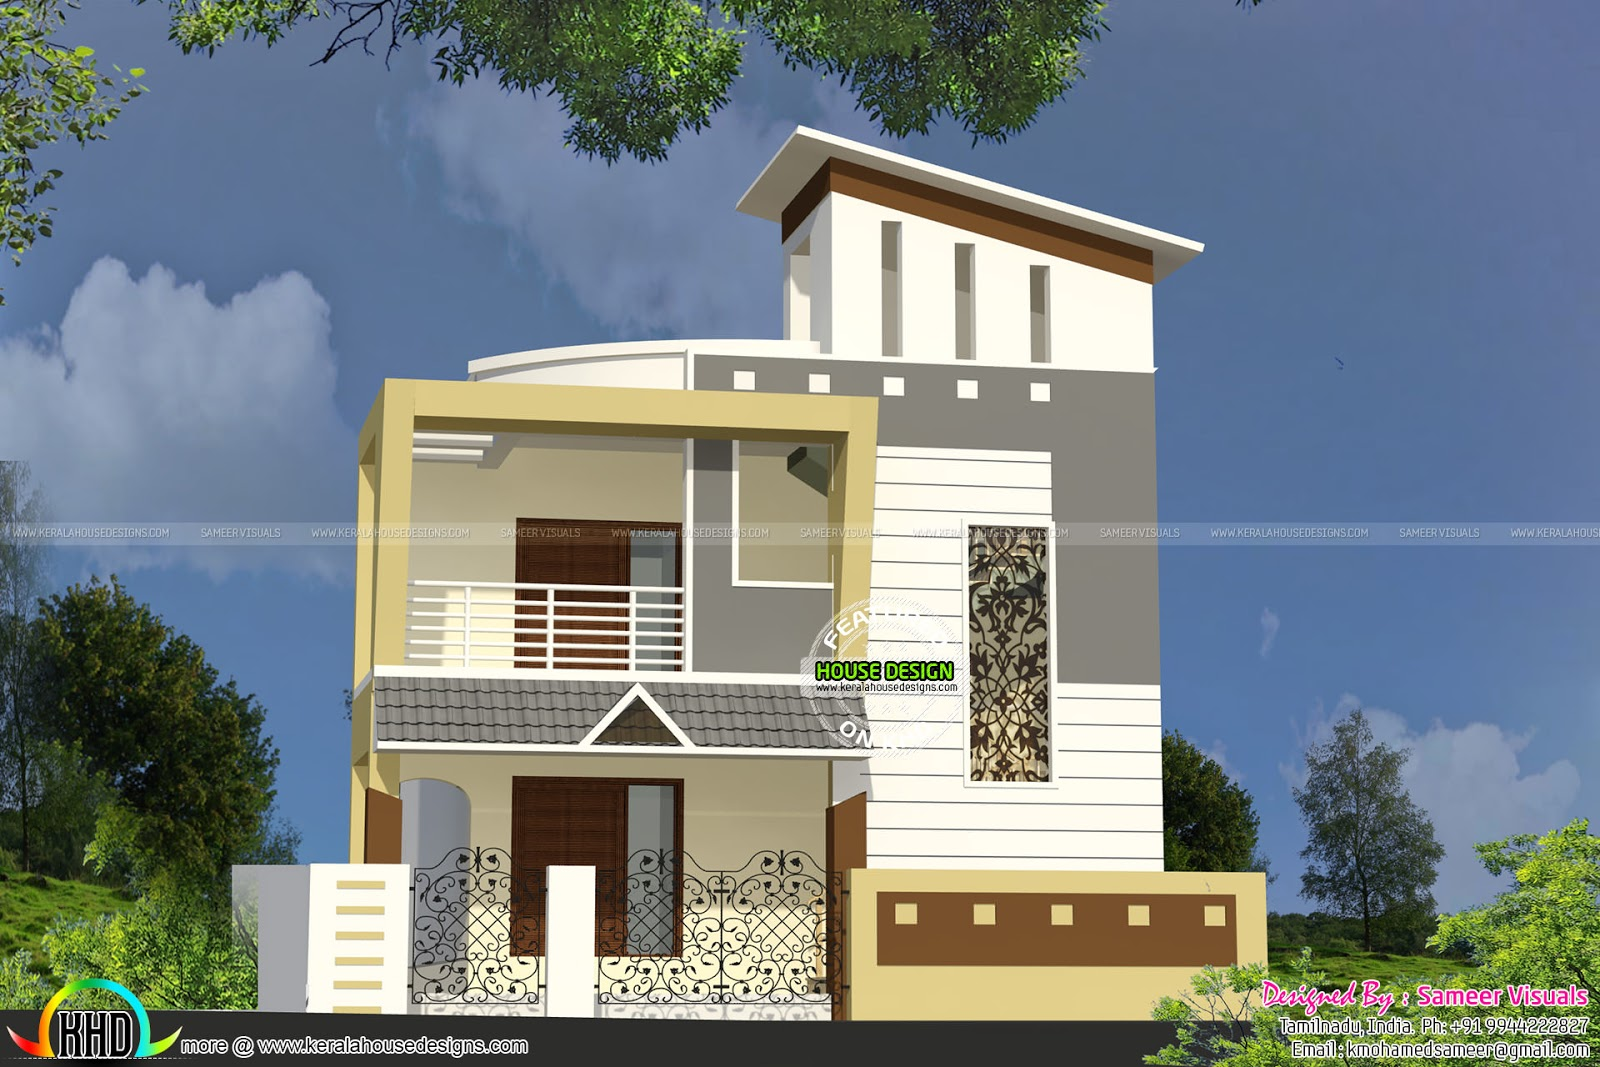 Double floor small home kerala home design and floor plans for House elevation models